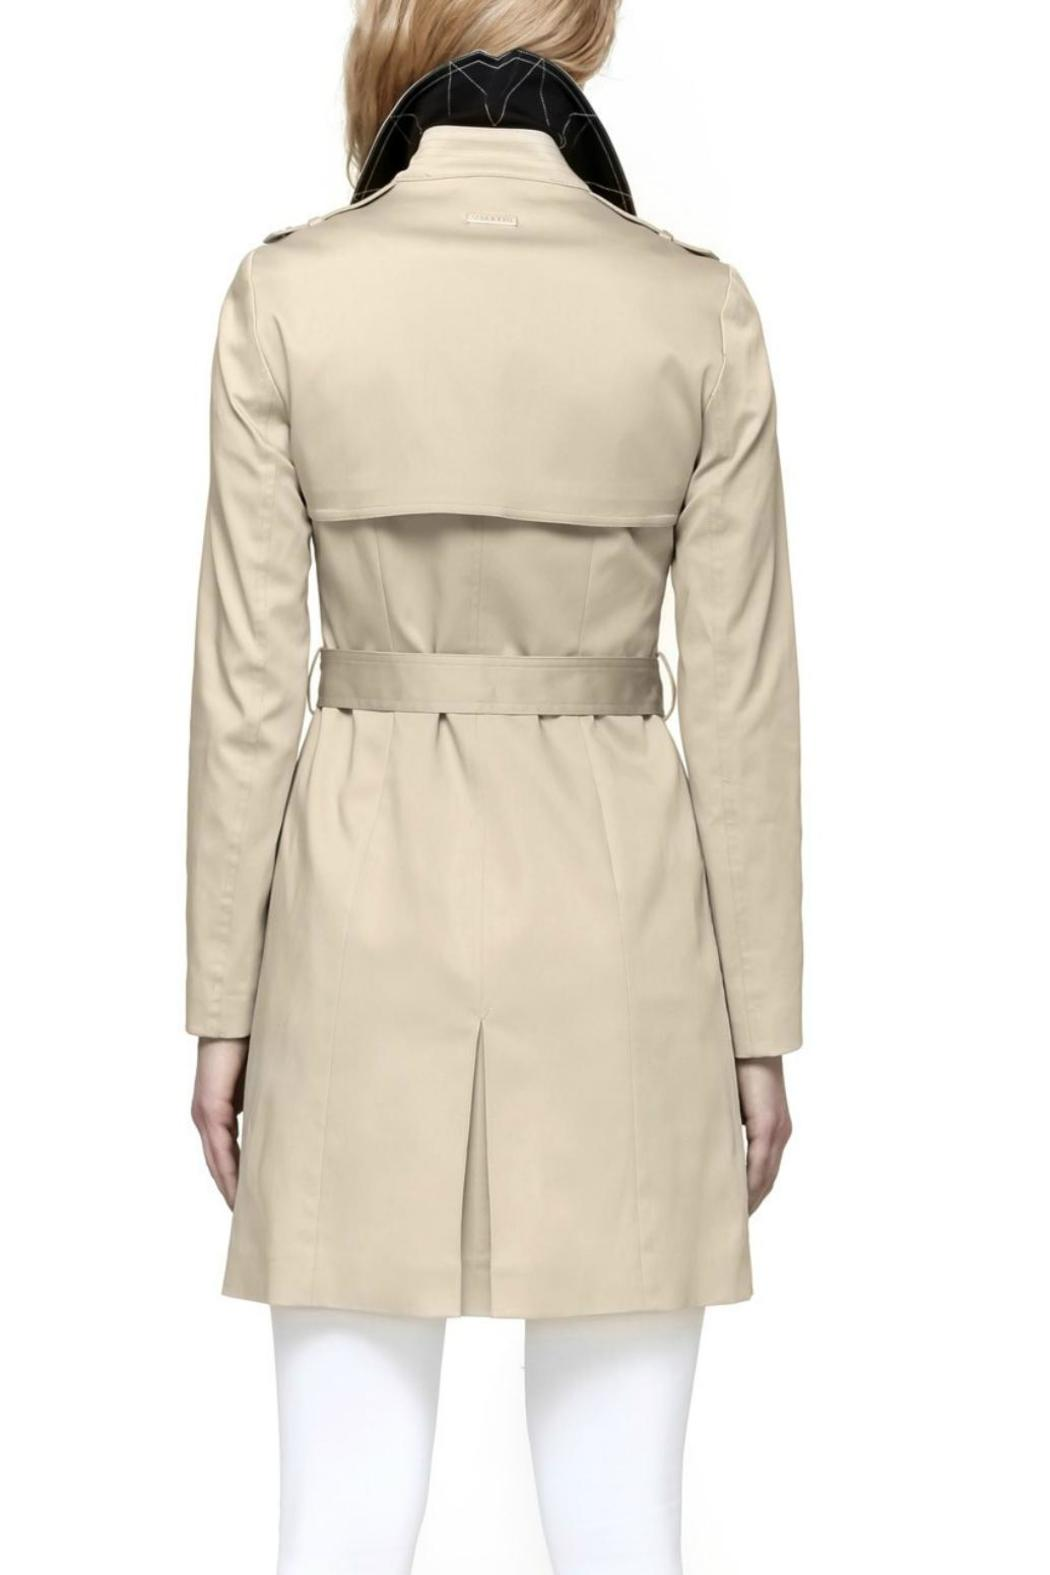 Soia & Kyo Classic Trench Coat - Front Full Image